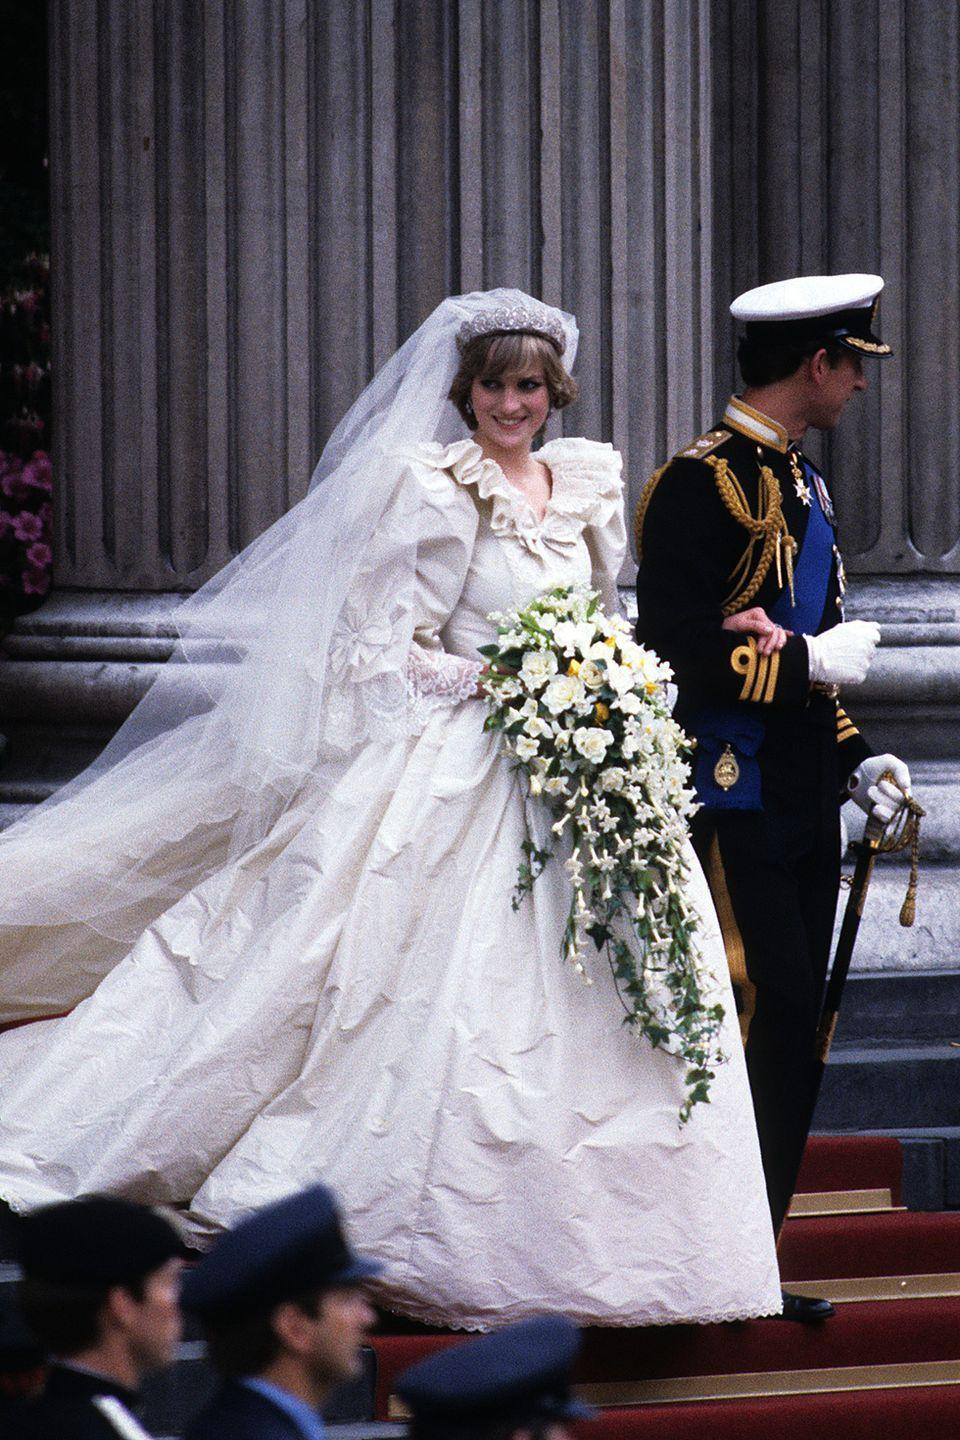 """<p>The people's princess set the bar for dramatic wedding dresses when she wed Prince Charles at St Paul's Cathedral in a voluminous dress by David Emanuel. The design was so secretive that Emanuel made a second dress just in case the first one was leaked.</p><p><strong>RELATED</strong>: <a href=""""https://www.goodhousekeeping.com/beauty/fashion/tips/g1372/princess-diana-fashion/"""" rel=""""nofollow noopener"""" target=""""_blank"""" data-ylk=""""slk:40 of Princess Diana's Best Style Moments Through the Years"""" class=""""link rapid-noclick-resp"""">40 of Princess Diana's Best Style Moments Through the Years</a></p>"""